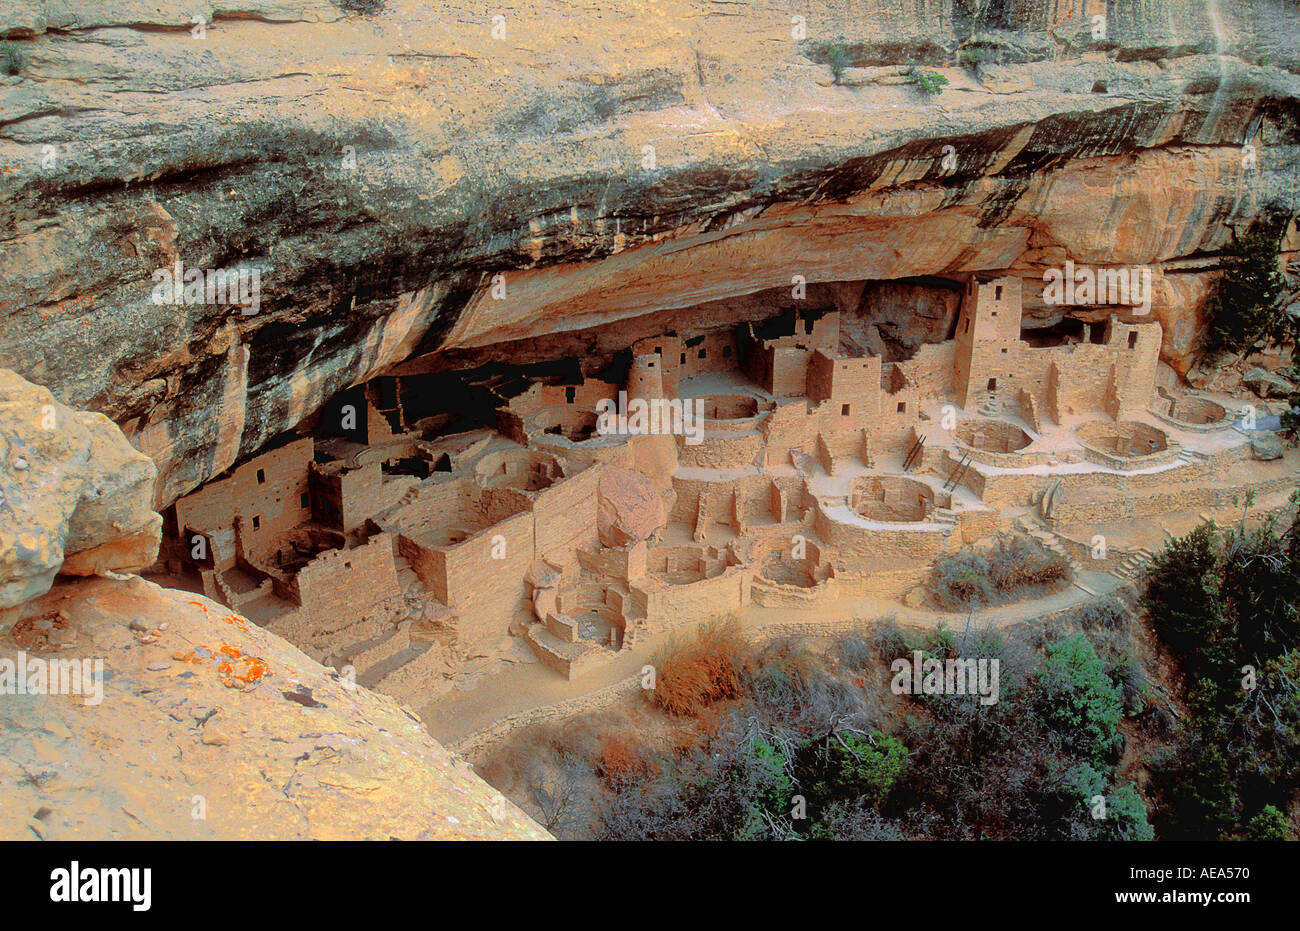 Very old Anasazi Indian village at Mesa Verde Arizona USA - Stock Image